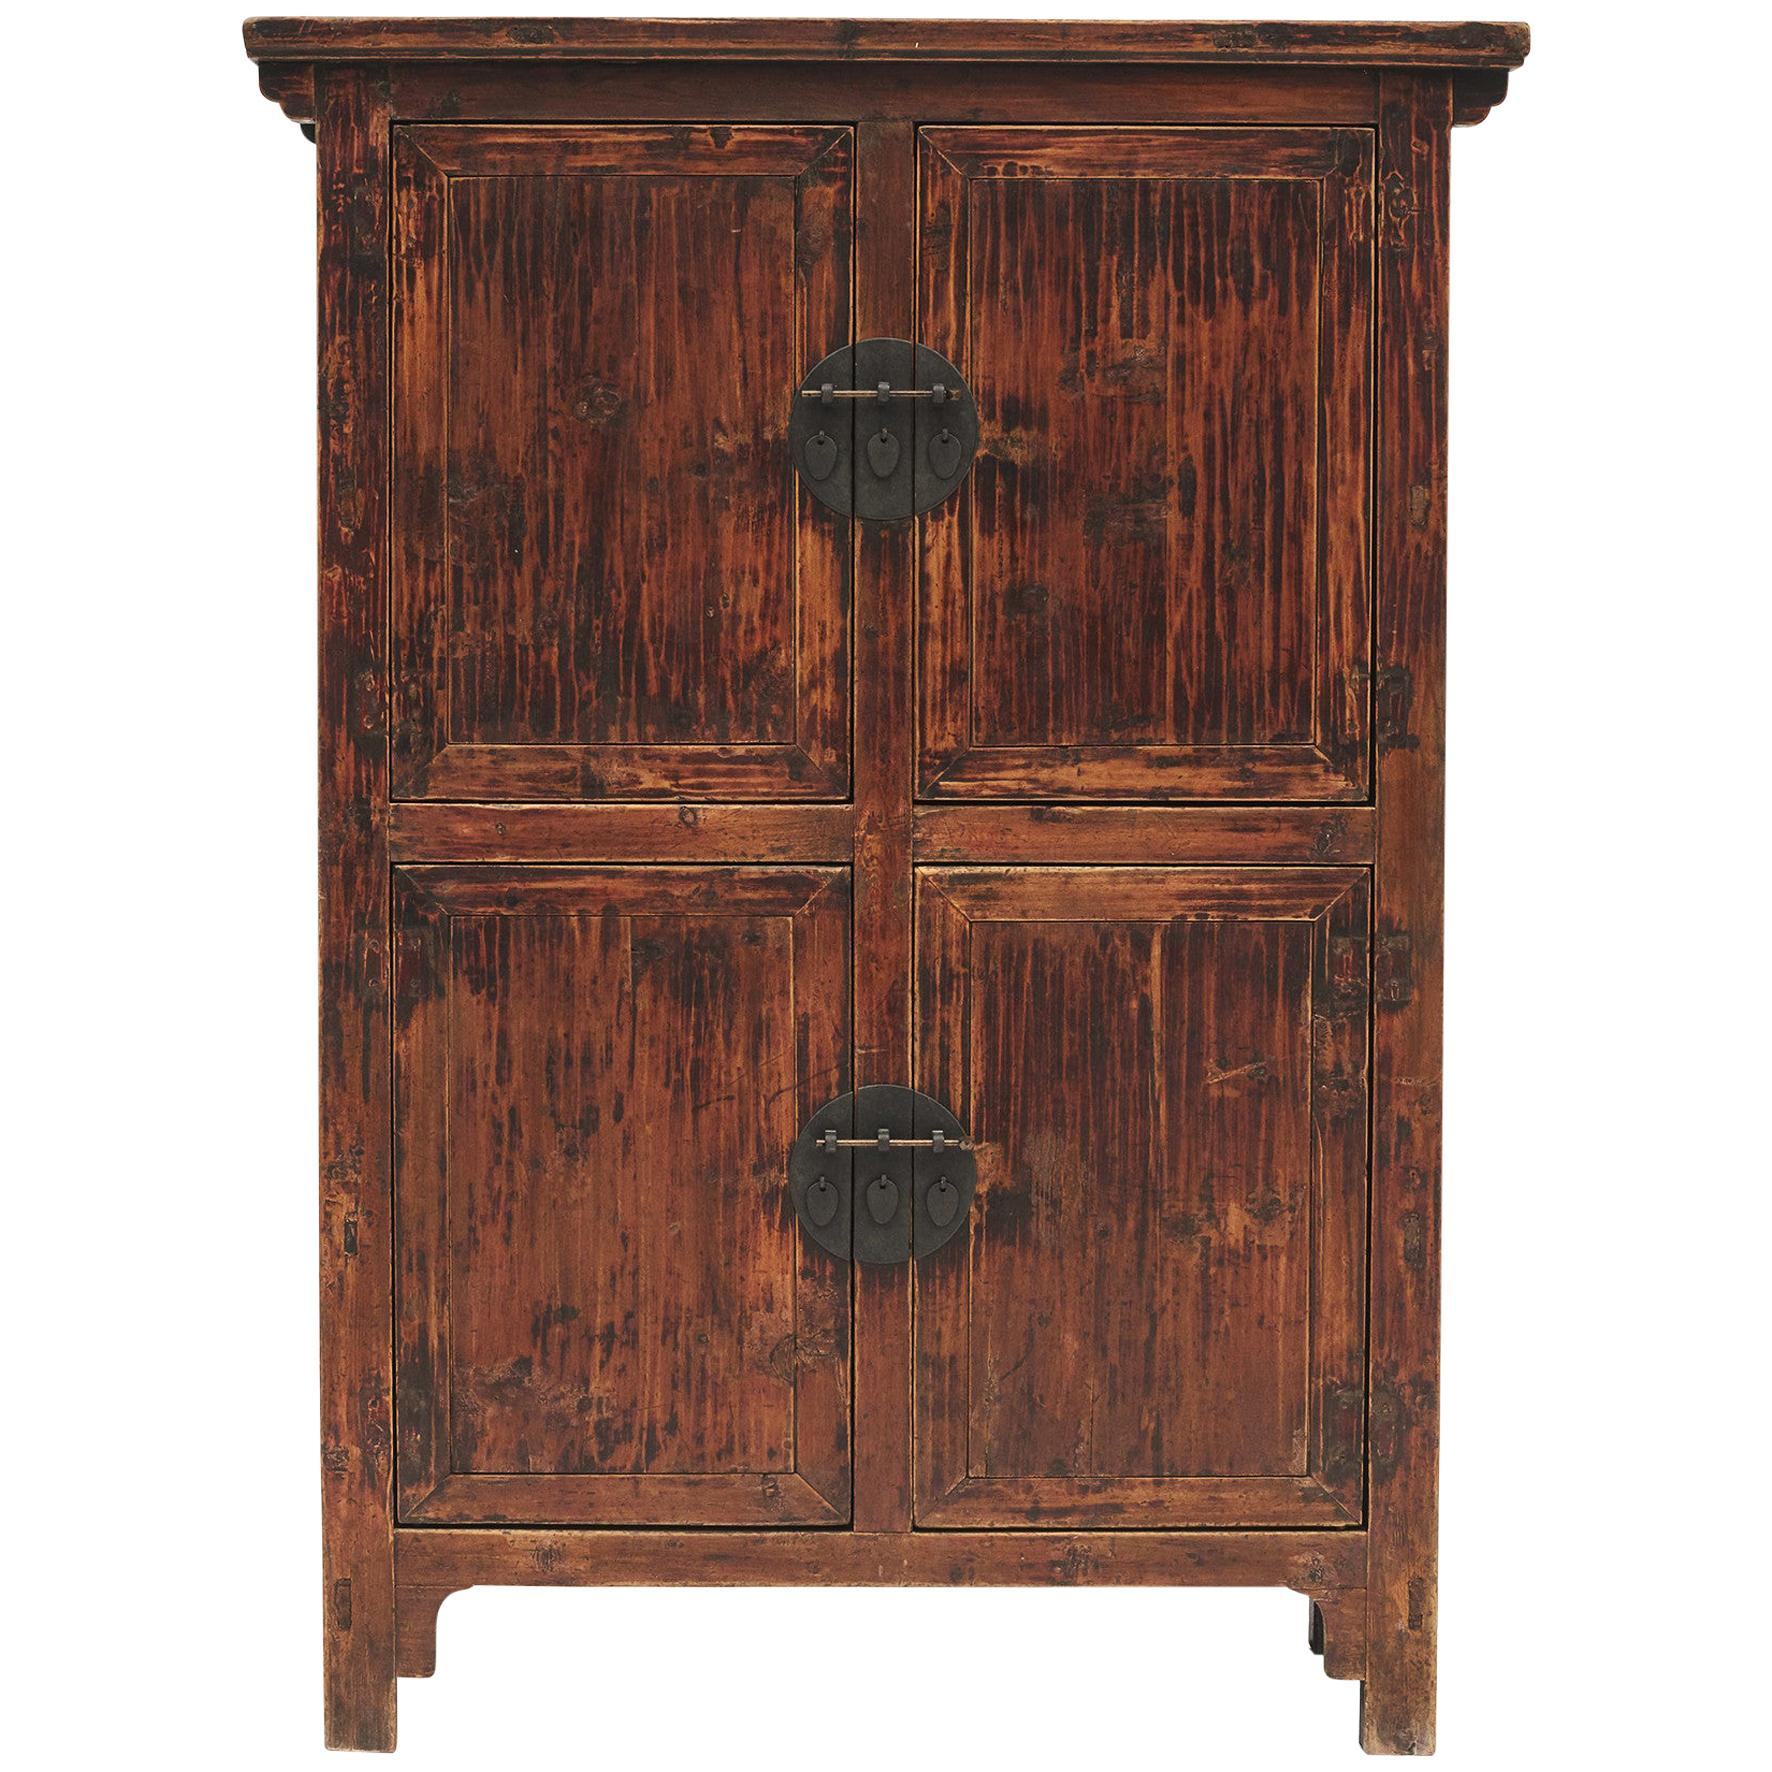 Early 19th Century Chinese Walnut Cabinet